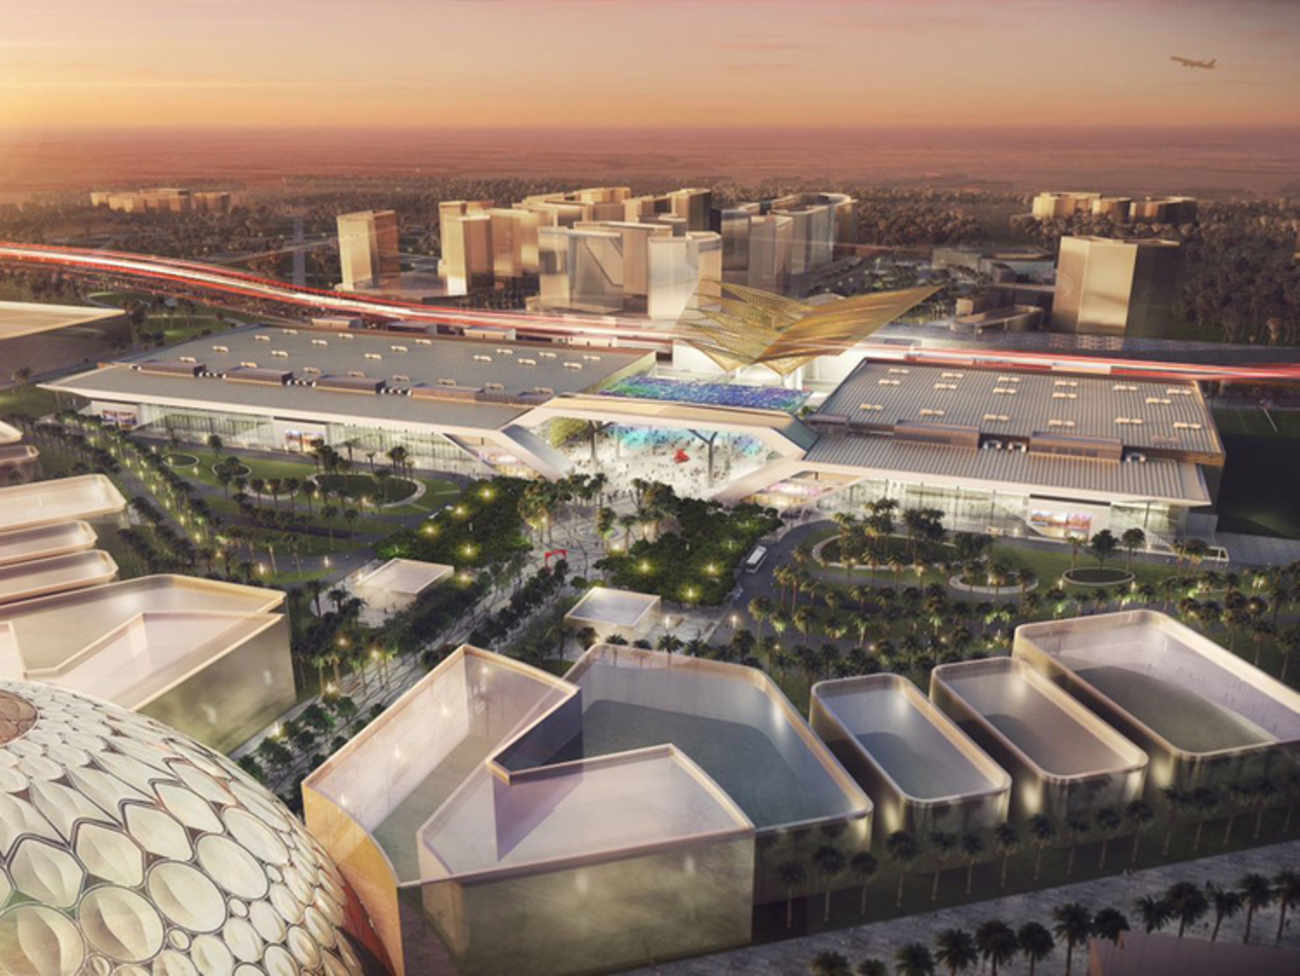 A glimpse inside the Dubai Exhibition Centre